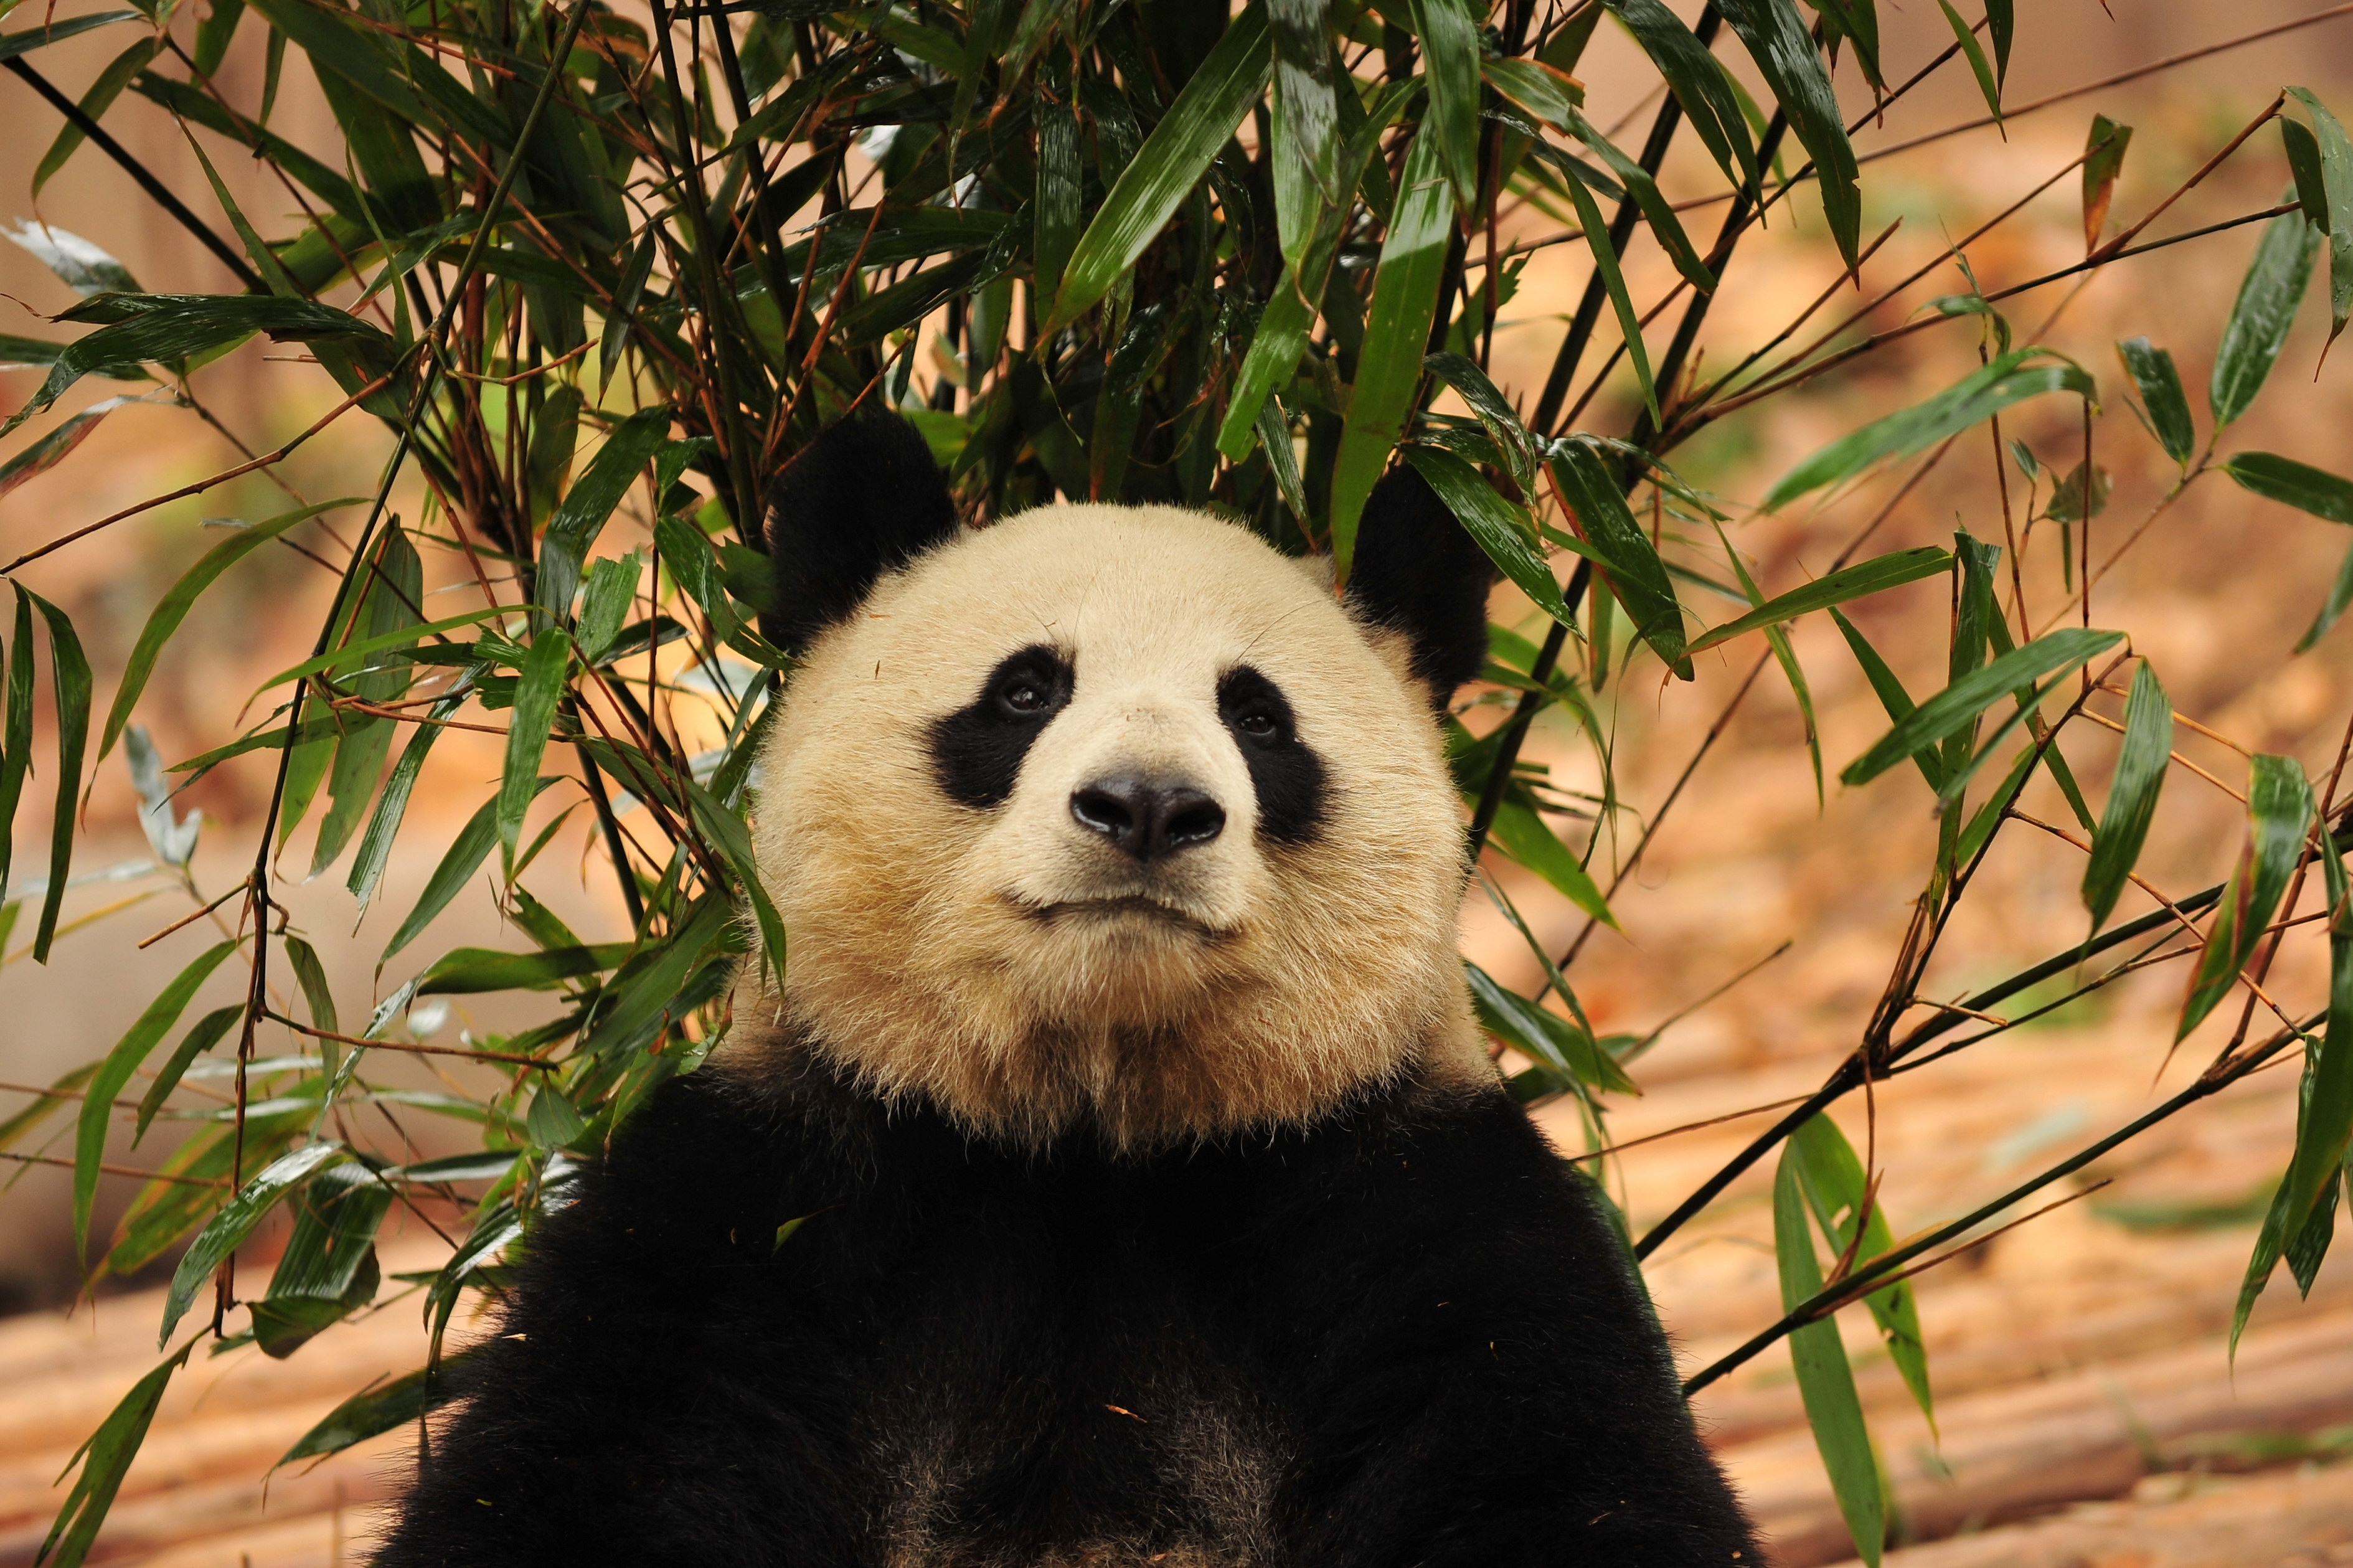 114941 download wallpaper Animals, Panda, Bamboo, Bear screensavers and pictures for free